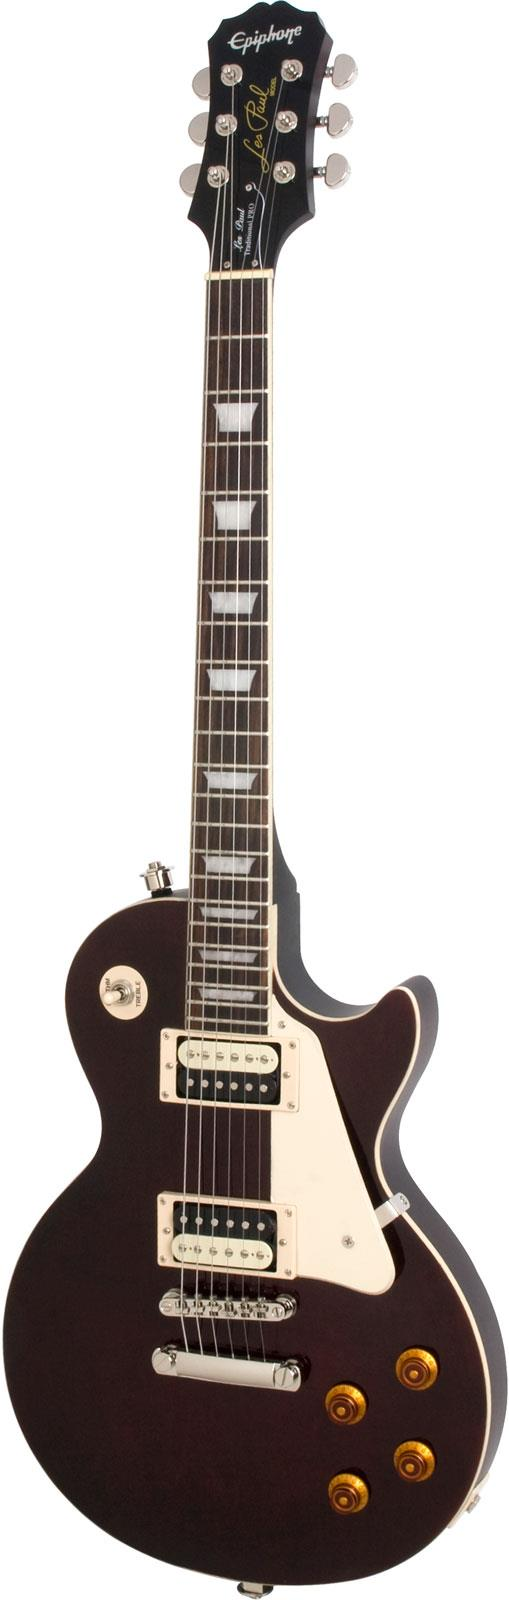 Les paul 3 pickup alternative wiring rowbis guitar blog epiphone les paul traditional pro wiring diagram wirdig wiring diagram asfbconference2016 Gallery